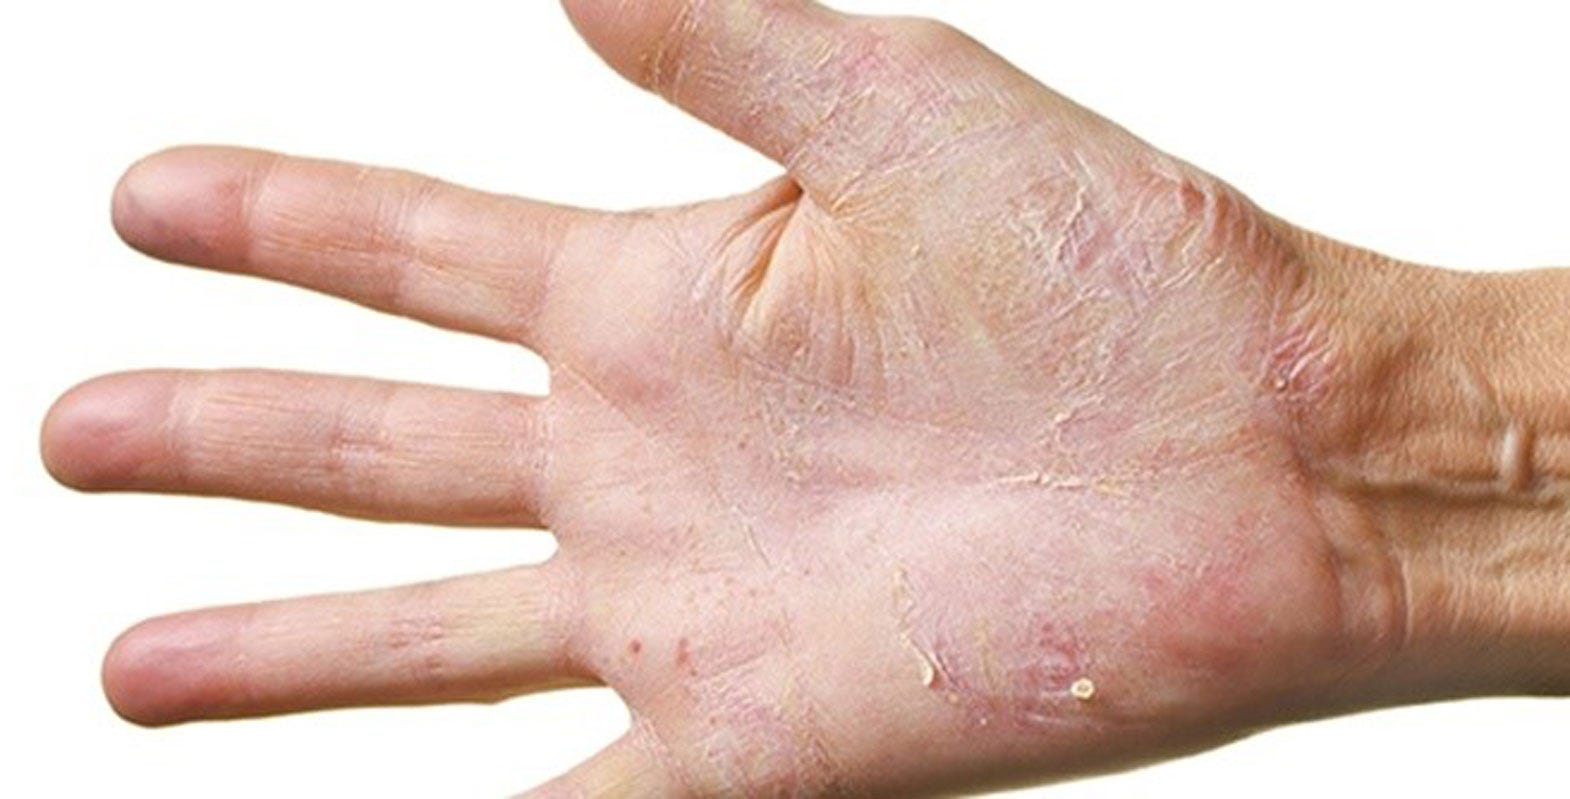 Skin reactions - is it really from the gloves?